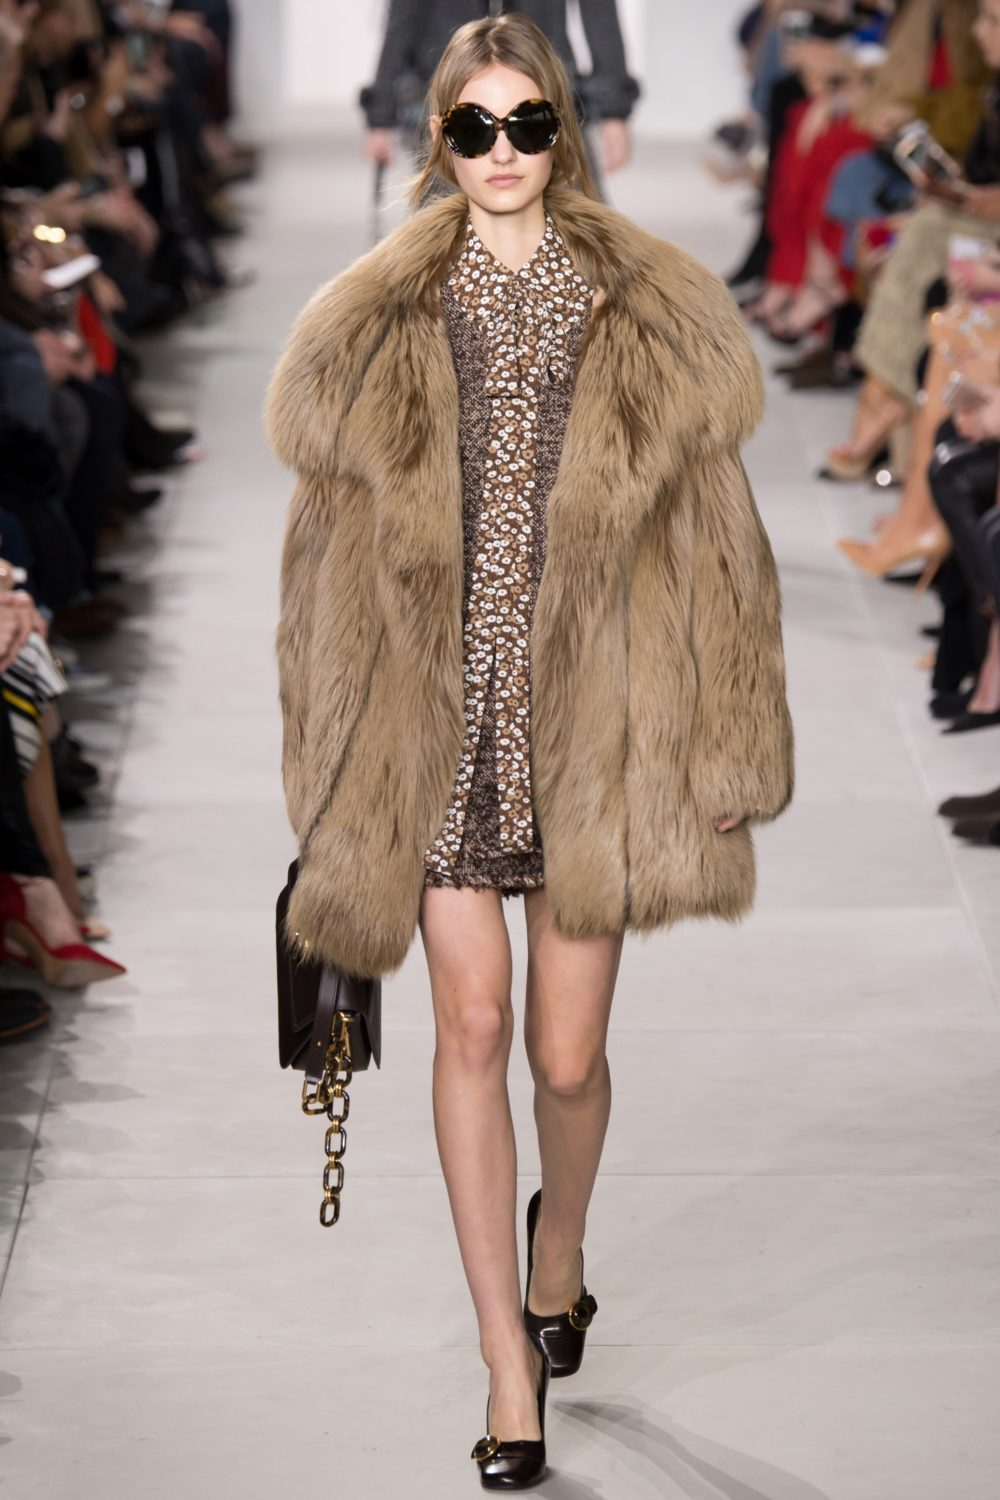 Michael Kors Fall 2016. Image courtesy of Vogue Runway.